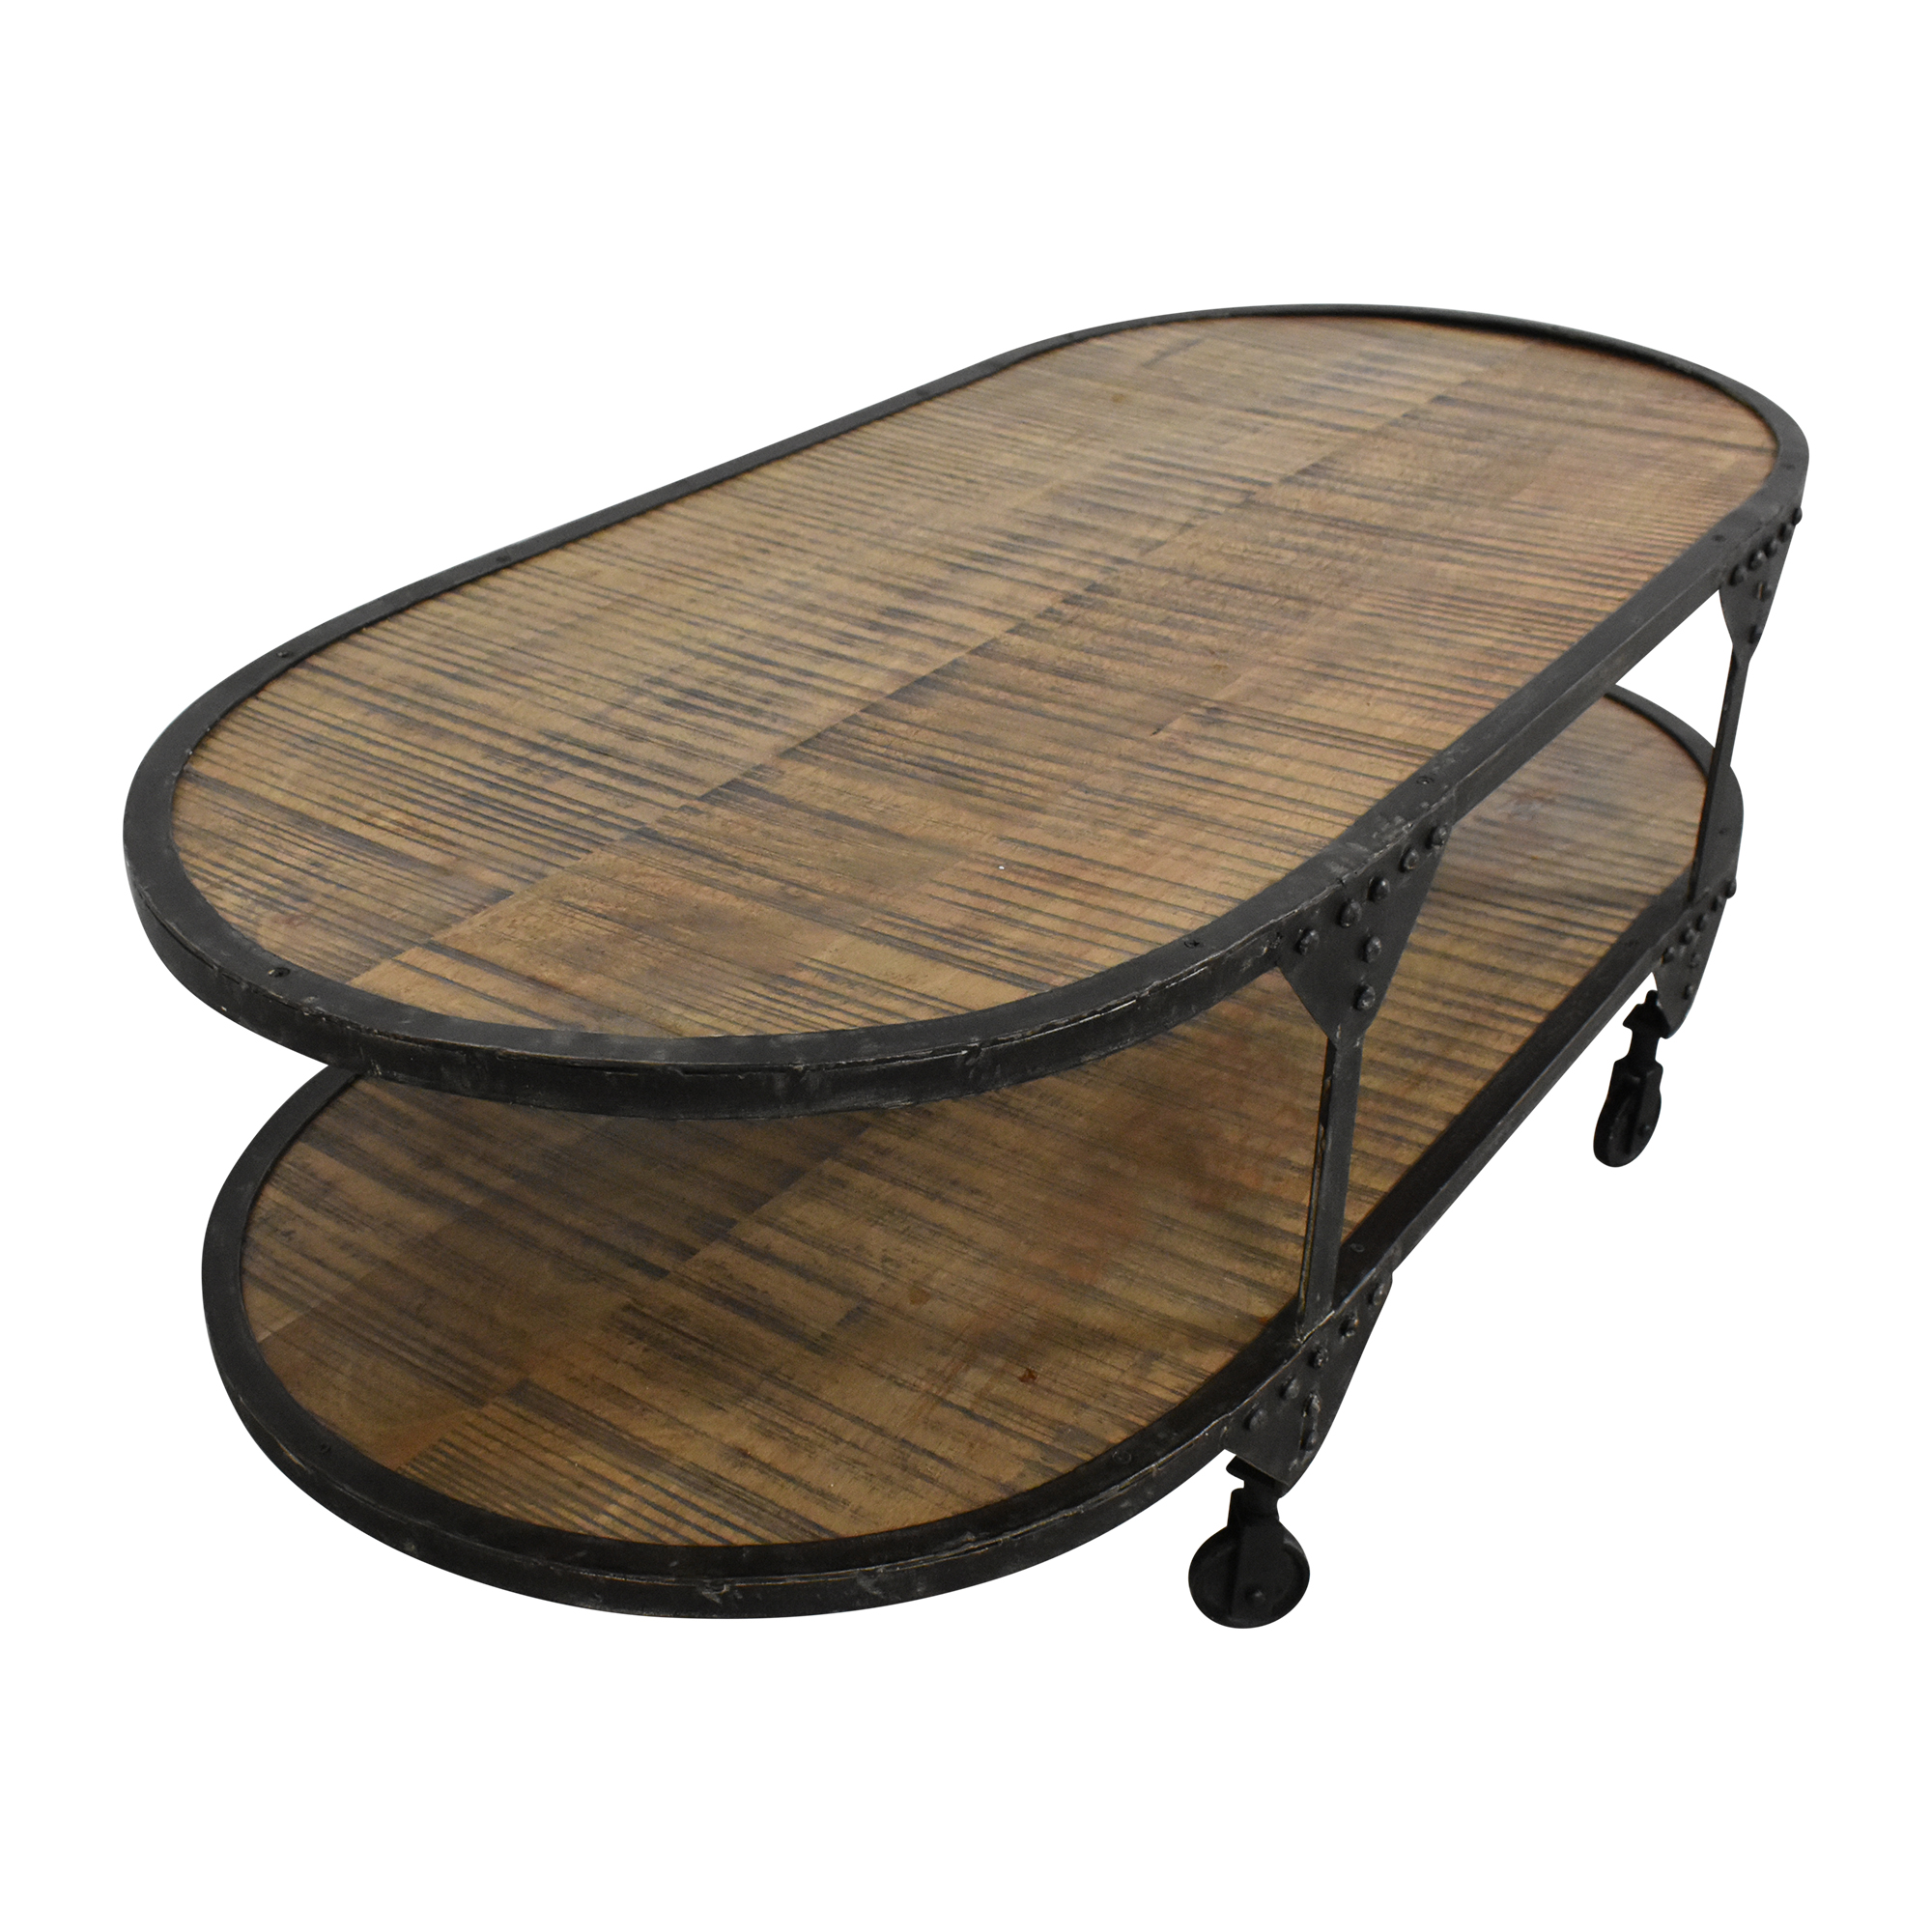 Two Tier Oval Coffee Table nj